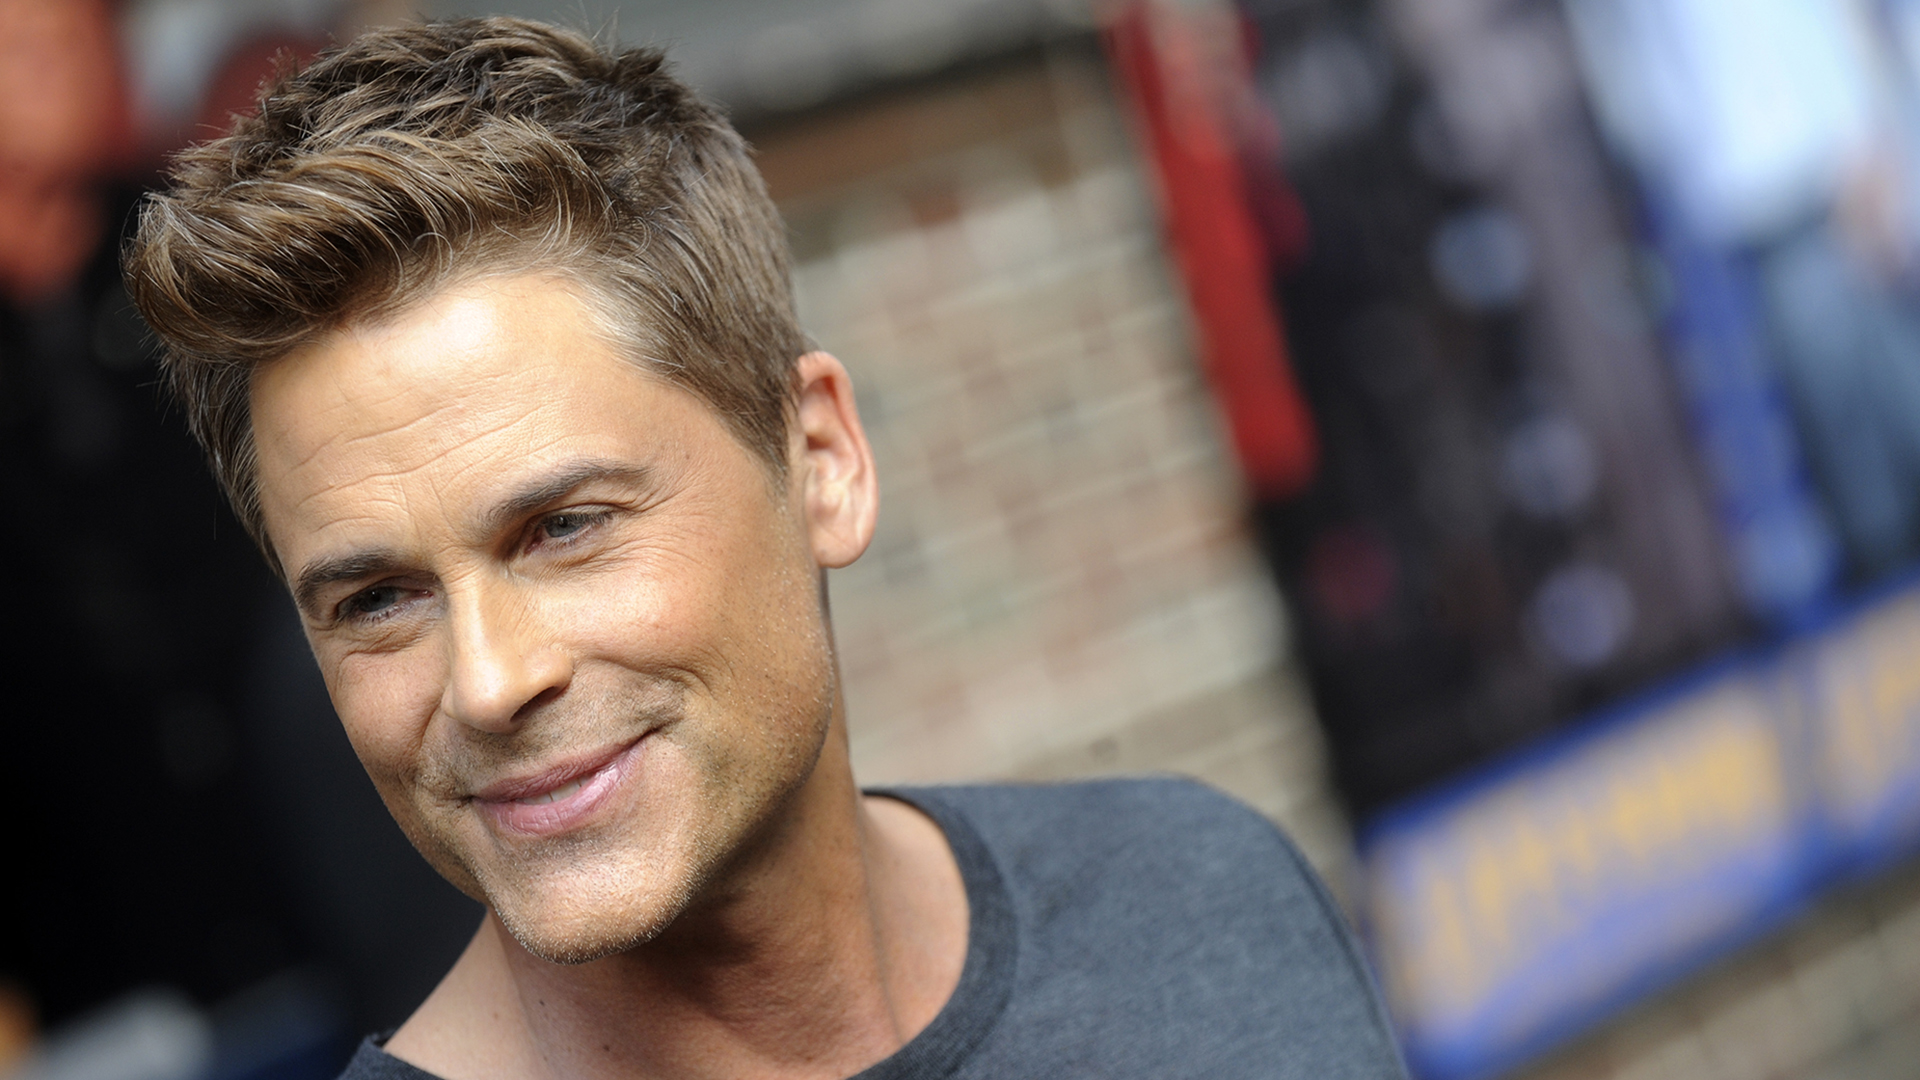 rob lowe 2017rob lowe roast, rob lowe parks and rec, rob lowe 2017, rob lowe code black, rob lowe ian somerhalder, rob lowe twitter, rob lowe californication, rob lowe movies, rob lowe interview, rob lowe family guy, rob lowe book, rob lowe roast watch online, rob lowe stop pooping, rob lowe jodie foster, robert lowe musician, rob lowe lego, rob lowe imdb, rob lowe natal chart, rob lowe oscars, rob lowe filmography